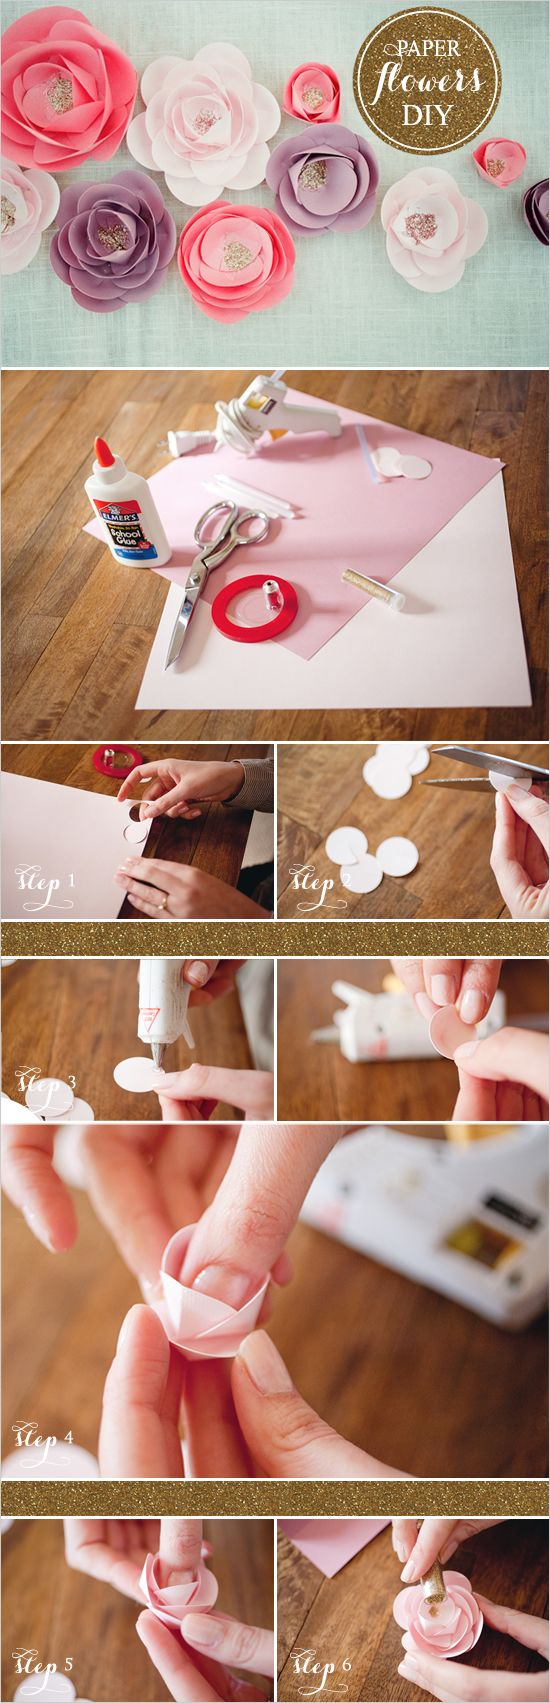 Making paper flowers!